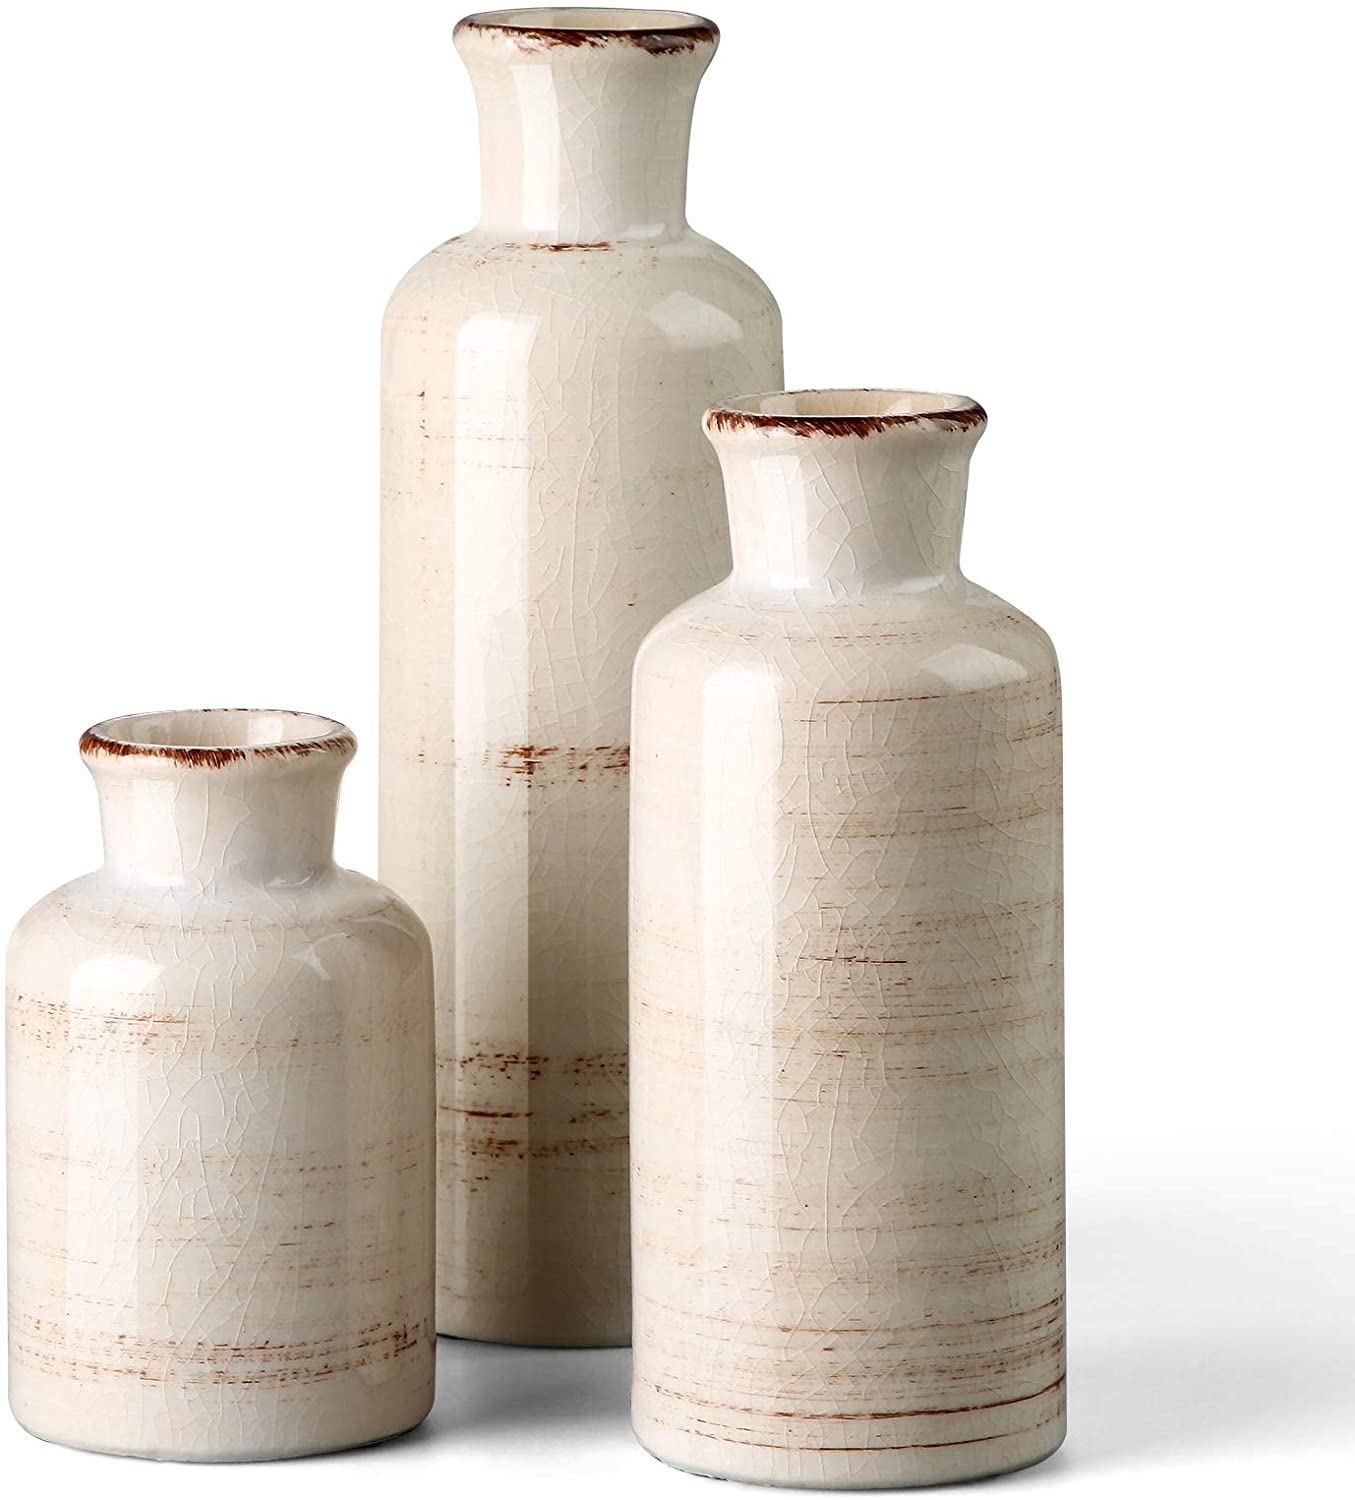 CwlwGO- Ceramic Rustic White Vase for Home Decor, Set of 3 Decorative Vases for Table, Kitchen, Living Room,Decorative Touch to Any room's Decor.Cracked Glass Glaze.